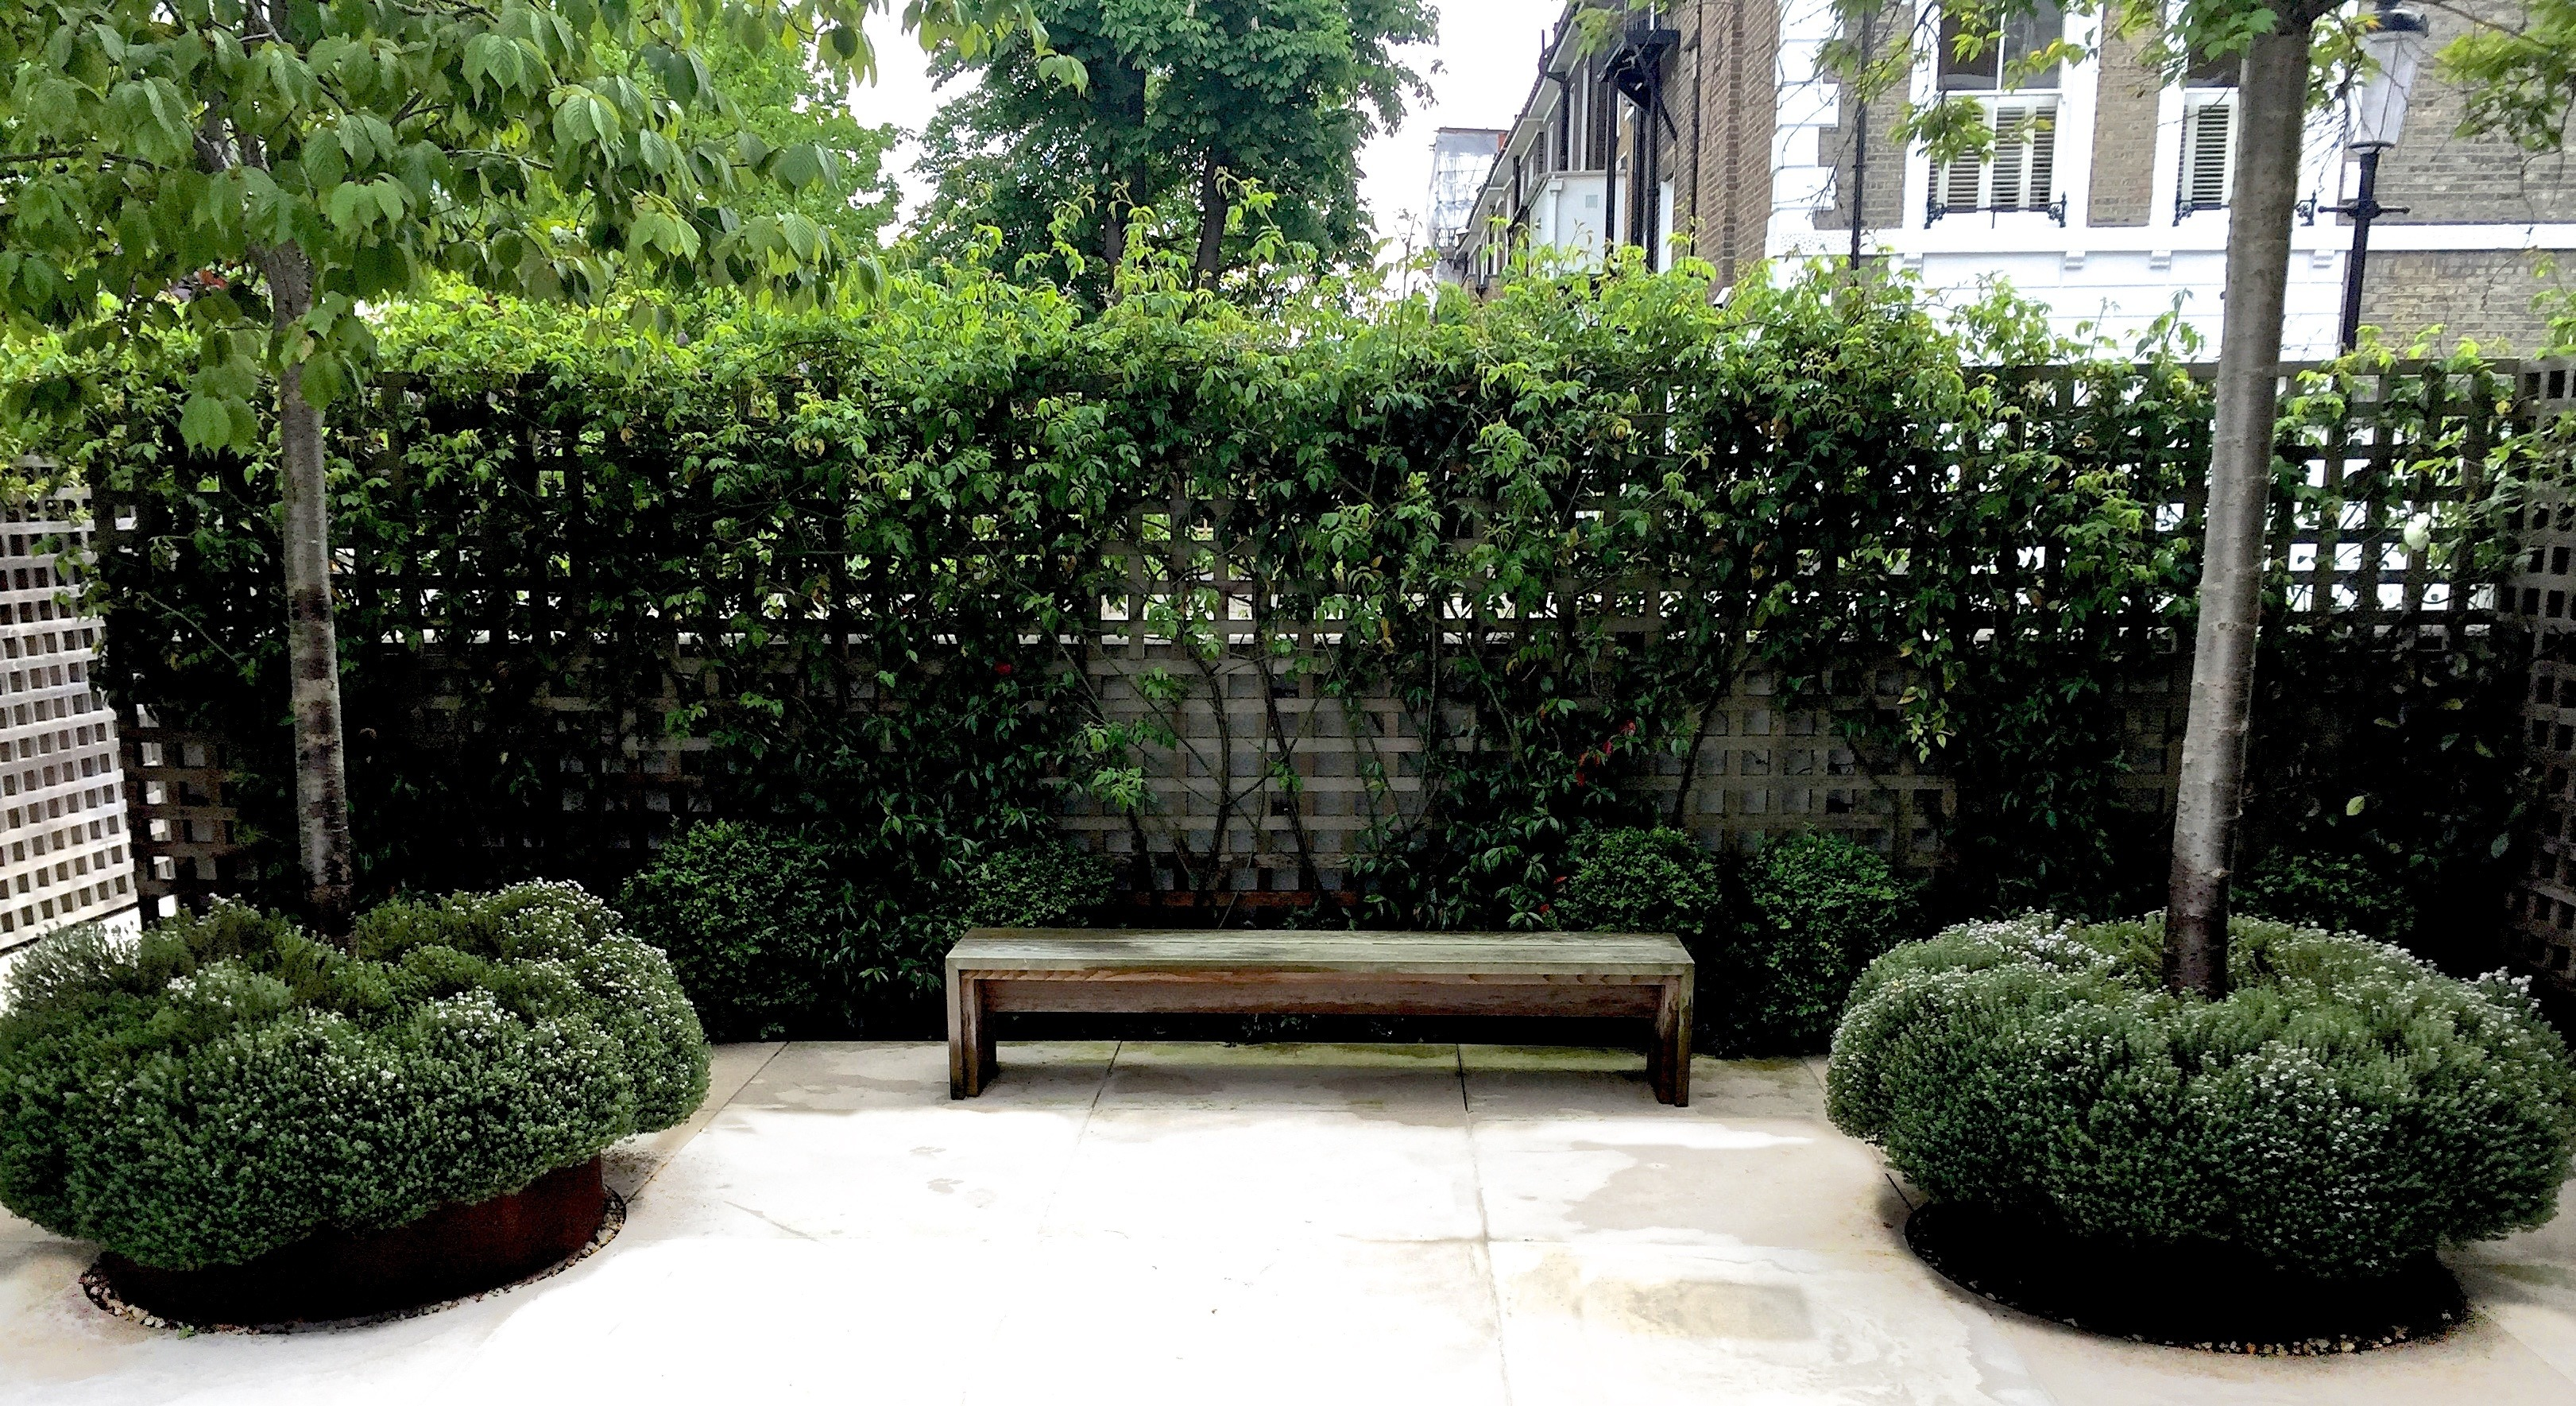 Chelsea Garden with standard trees and thyme